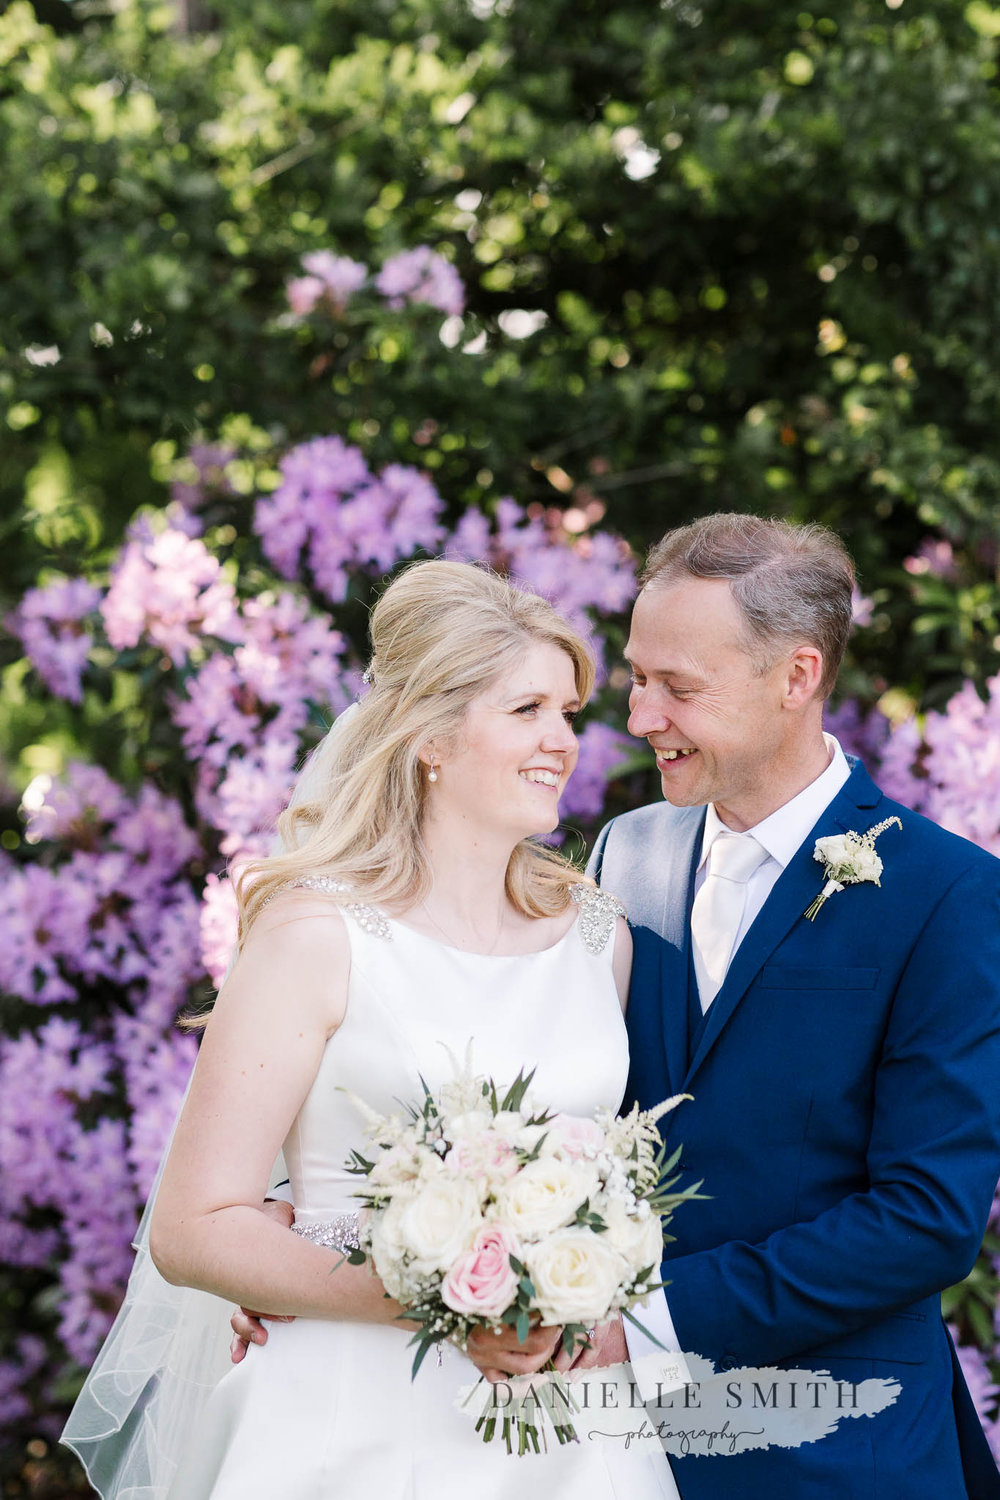 bride and groom laughing with purple flowers in background